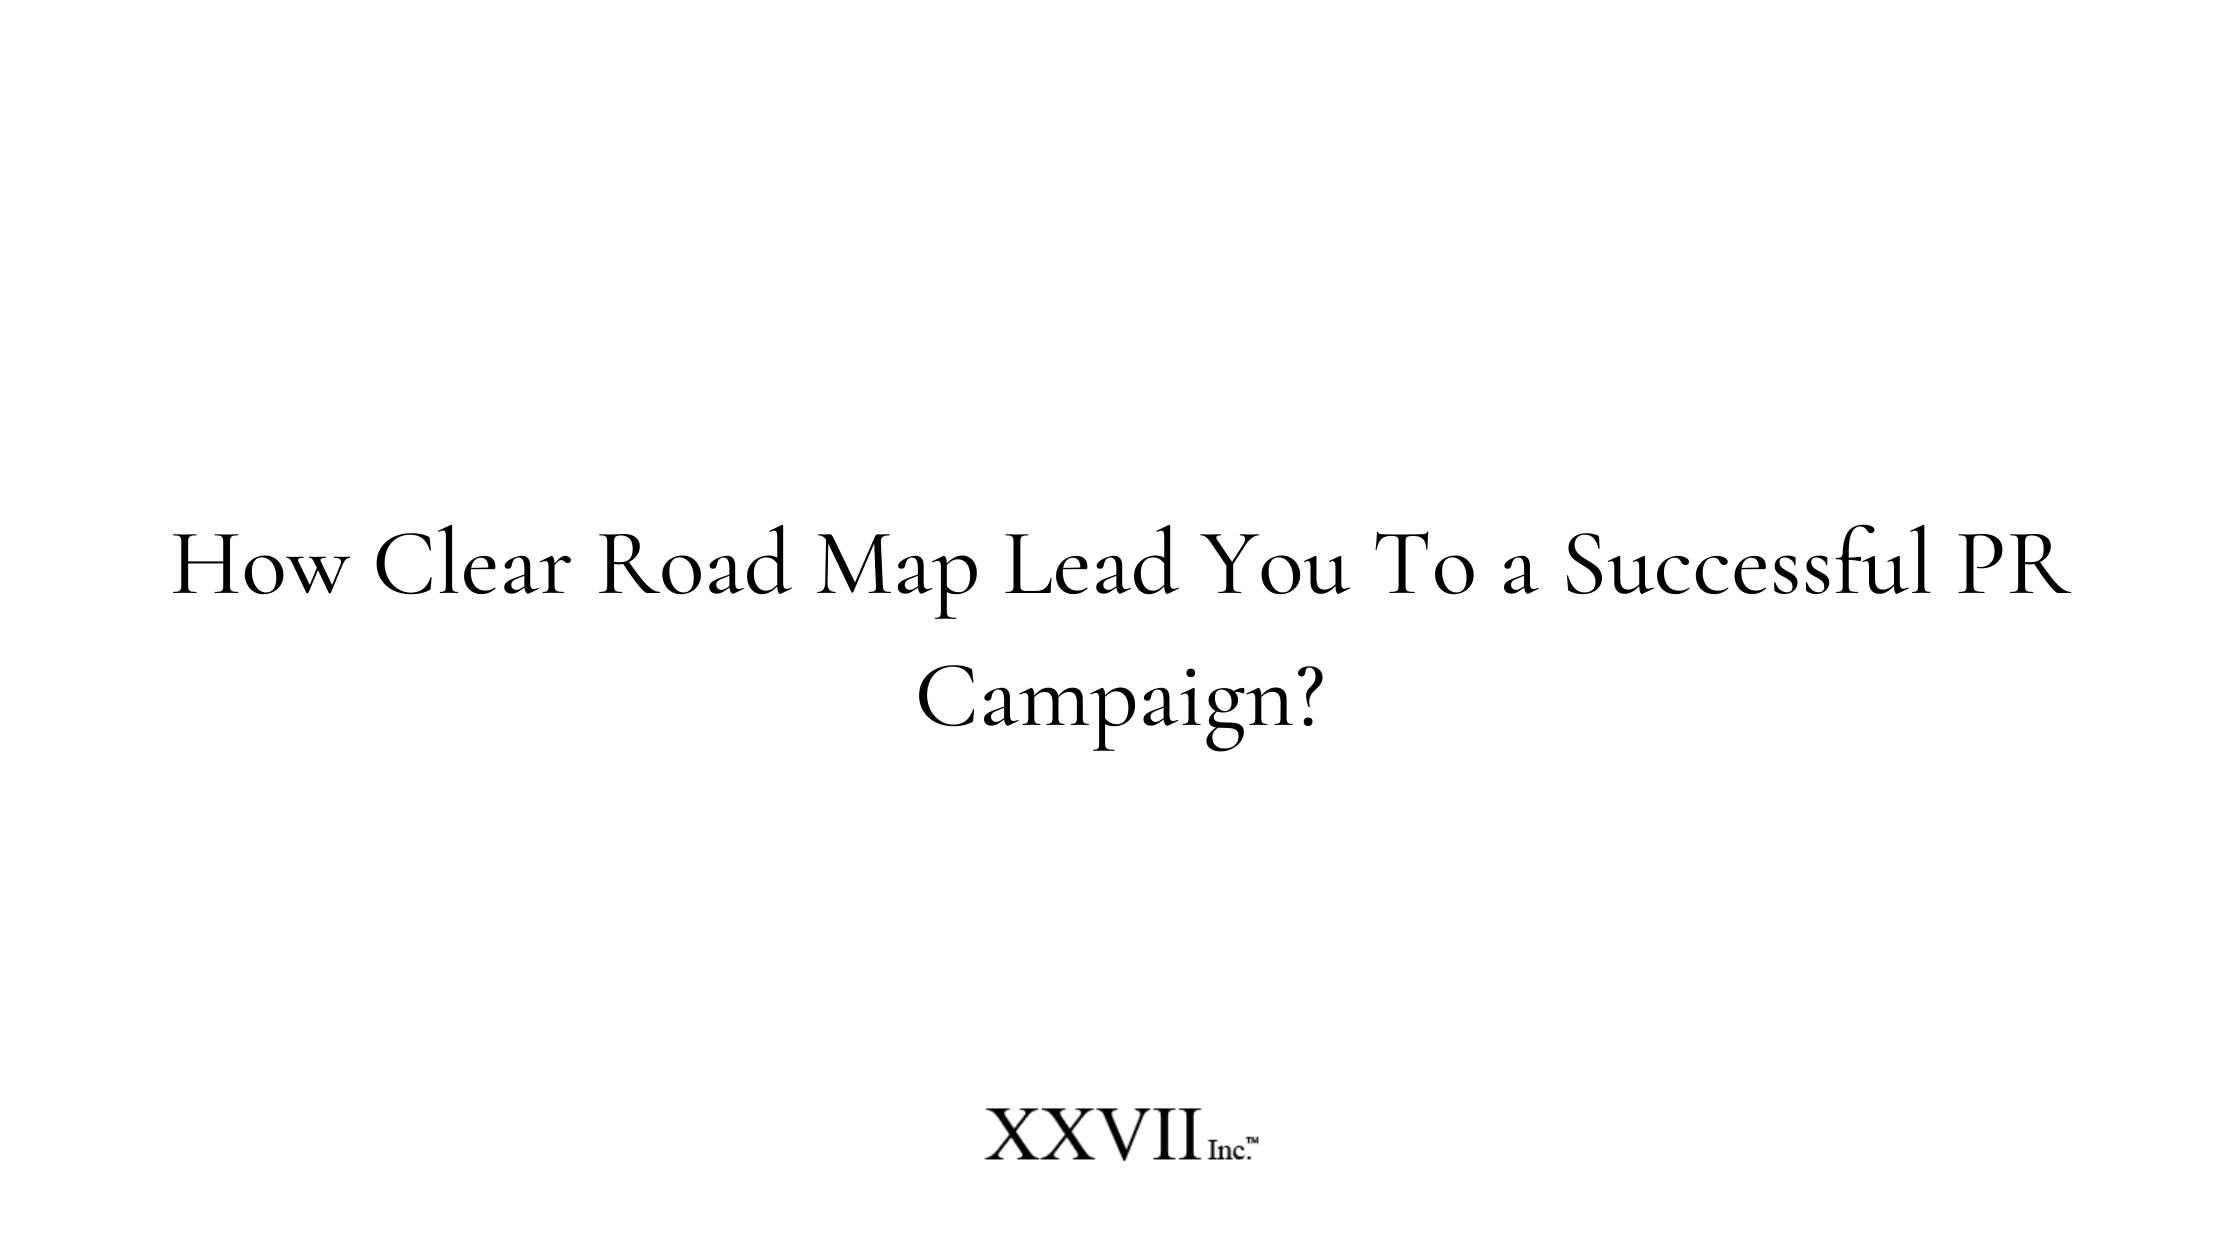 How Clear Road Map Lead You To a Successful PR Campaign?